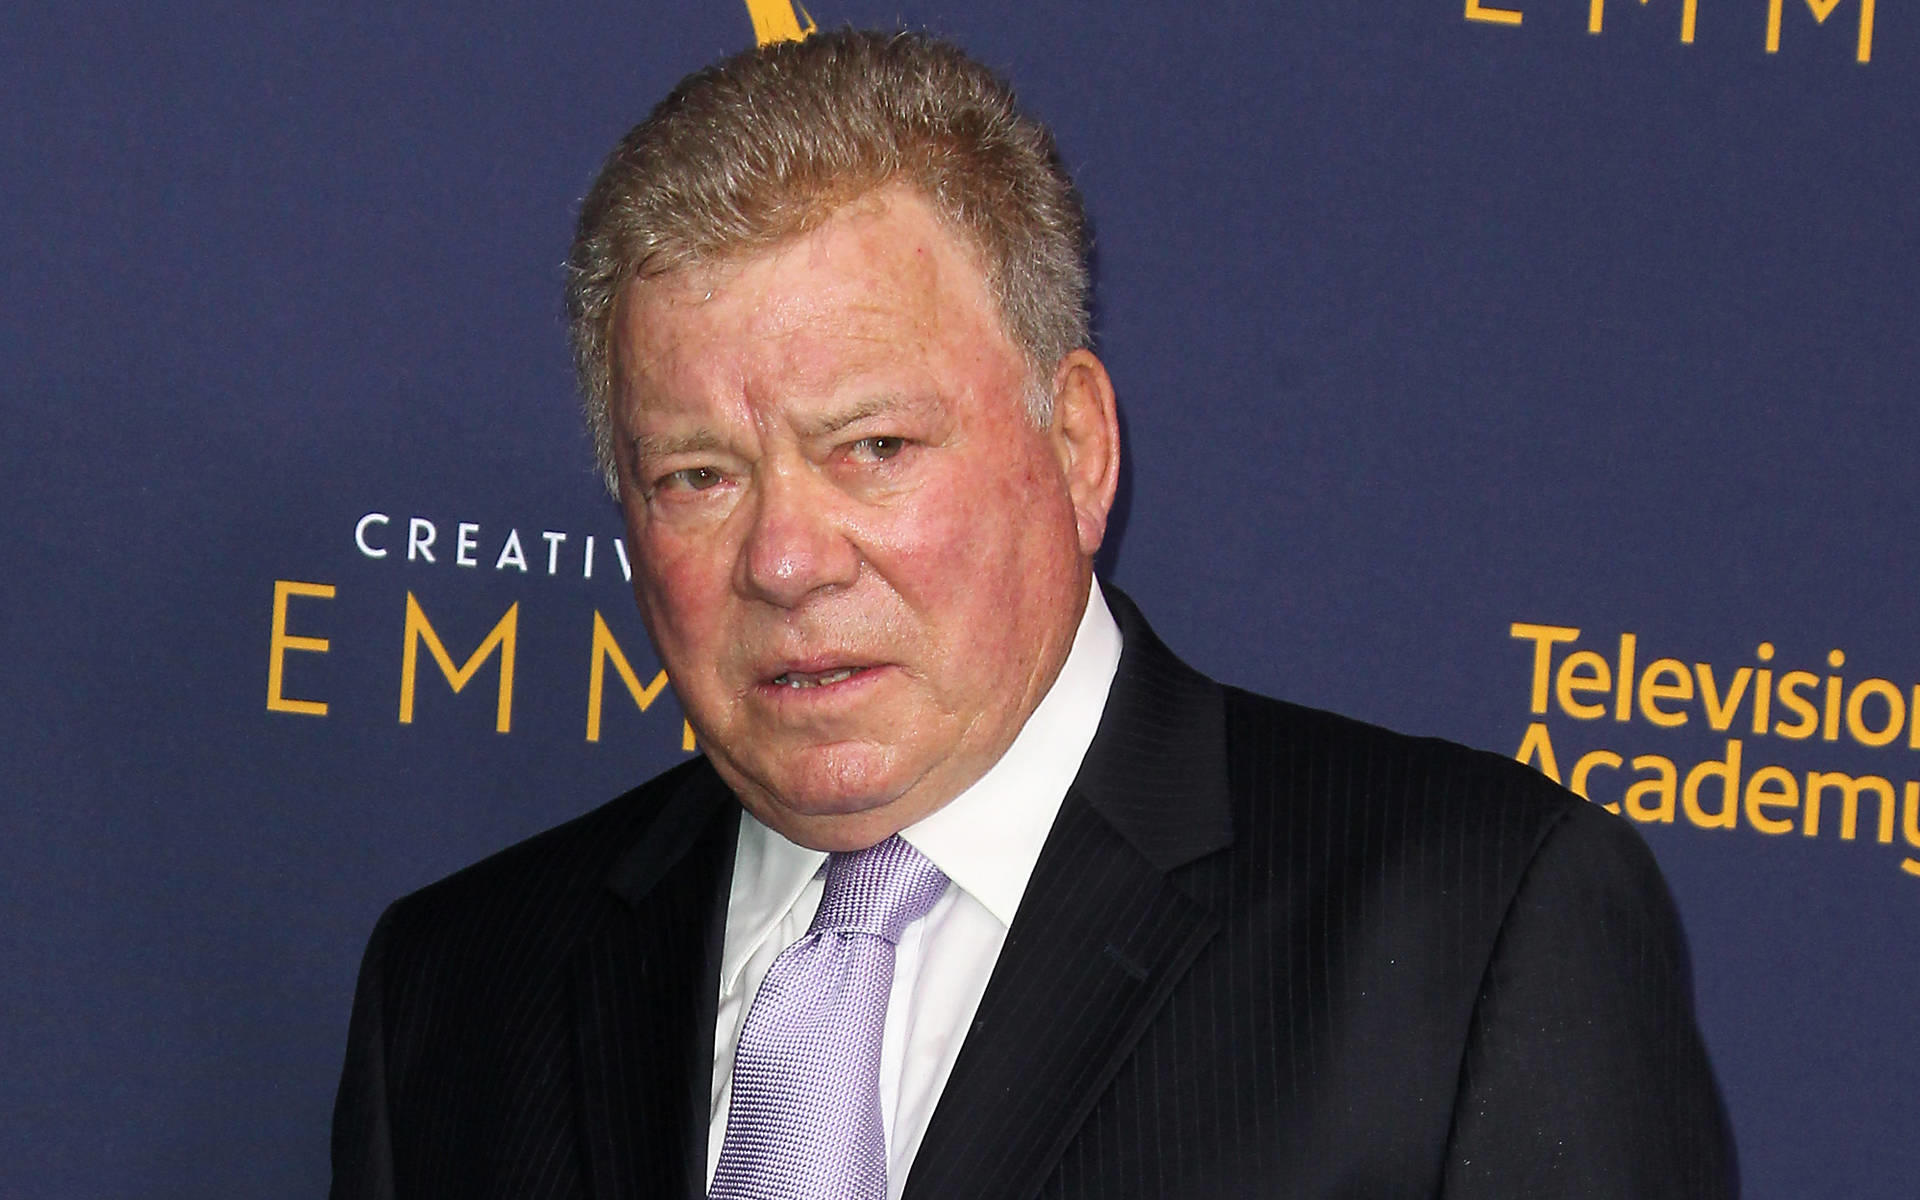 Beam me up, Scotty: 'Captain Kirk' William Shatner lässt sich scheiden